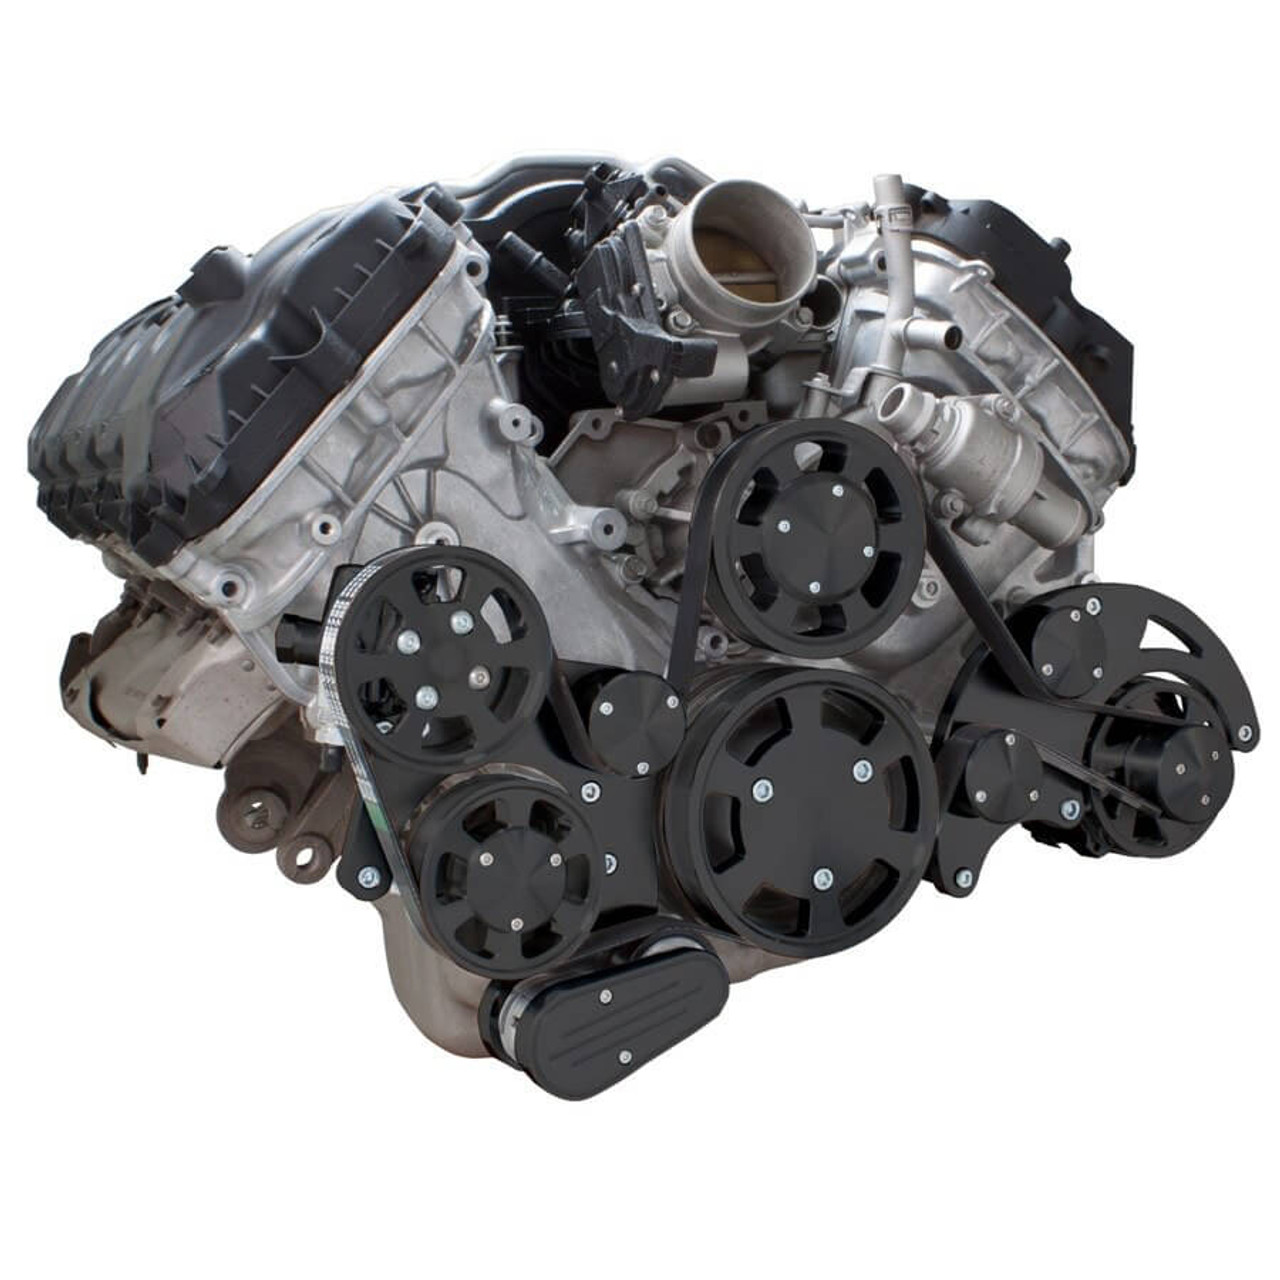 stealth black serpentine system for ford coyote 5 0 alternator power steering [ 900 x 900 Pixel ]